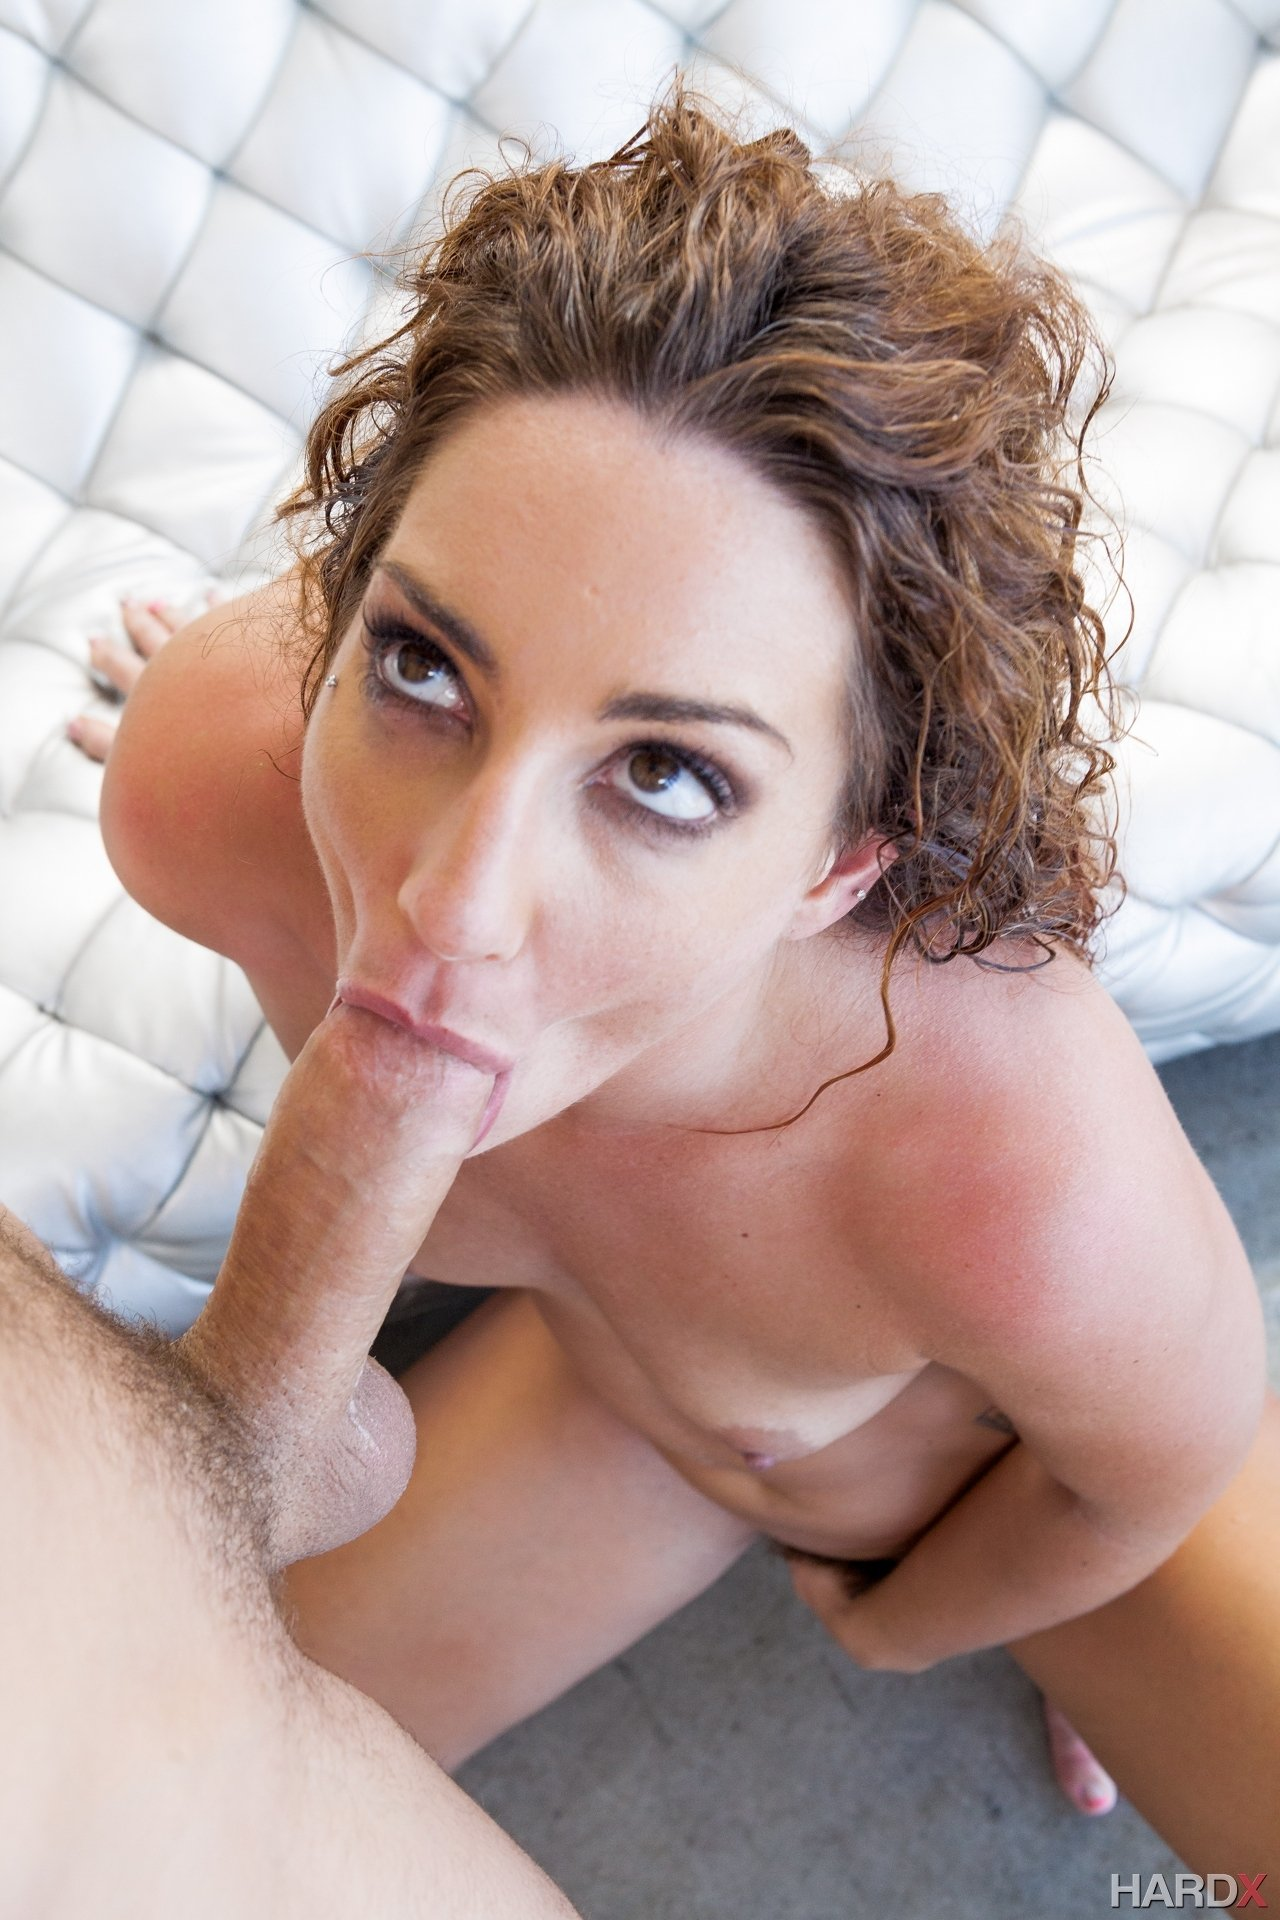 Arazilkree    reccomended After fucked in ass and pussy till she passed out